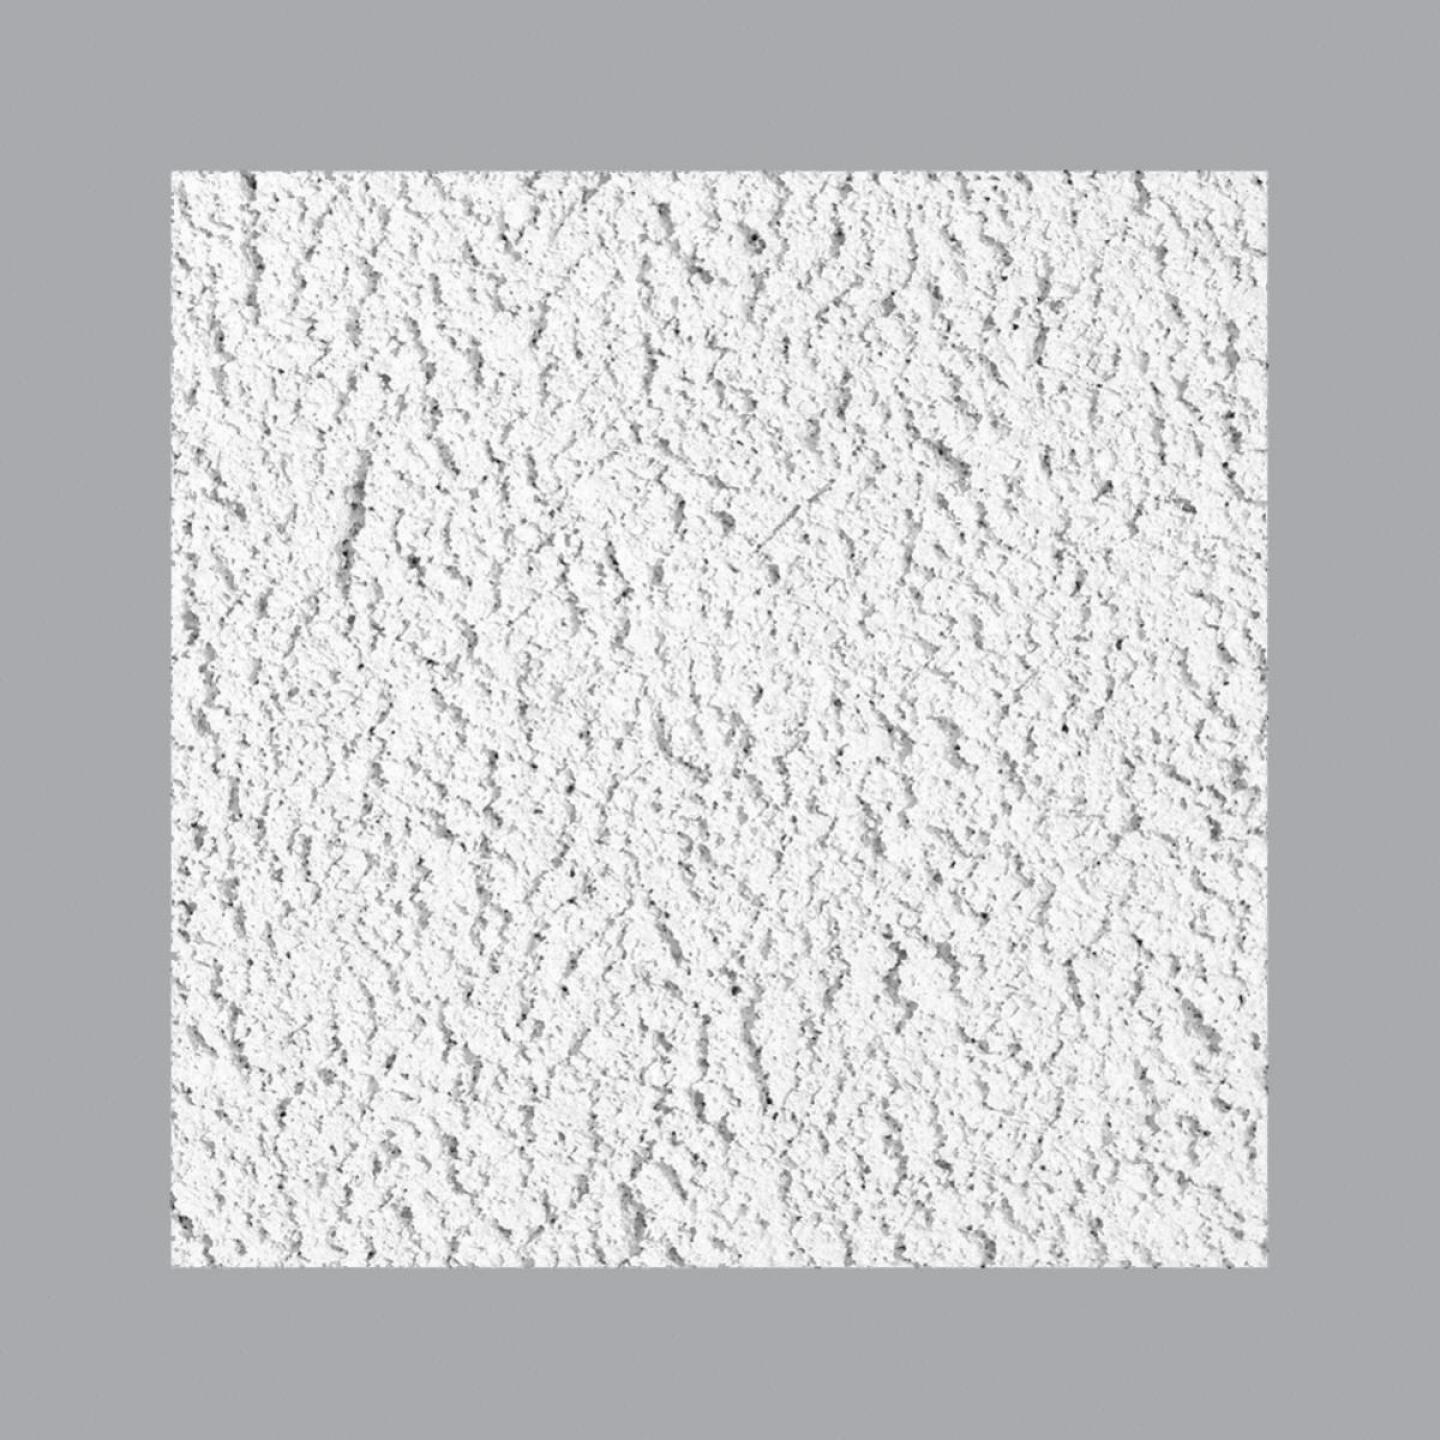 Cheyenne 2 Ft. x 2 Ft. White Cast Mineral Fiber Ceiling Tile (8-Count) Image 1